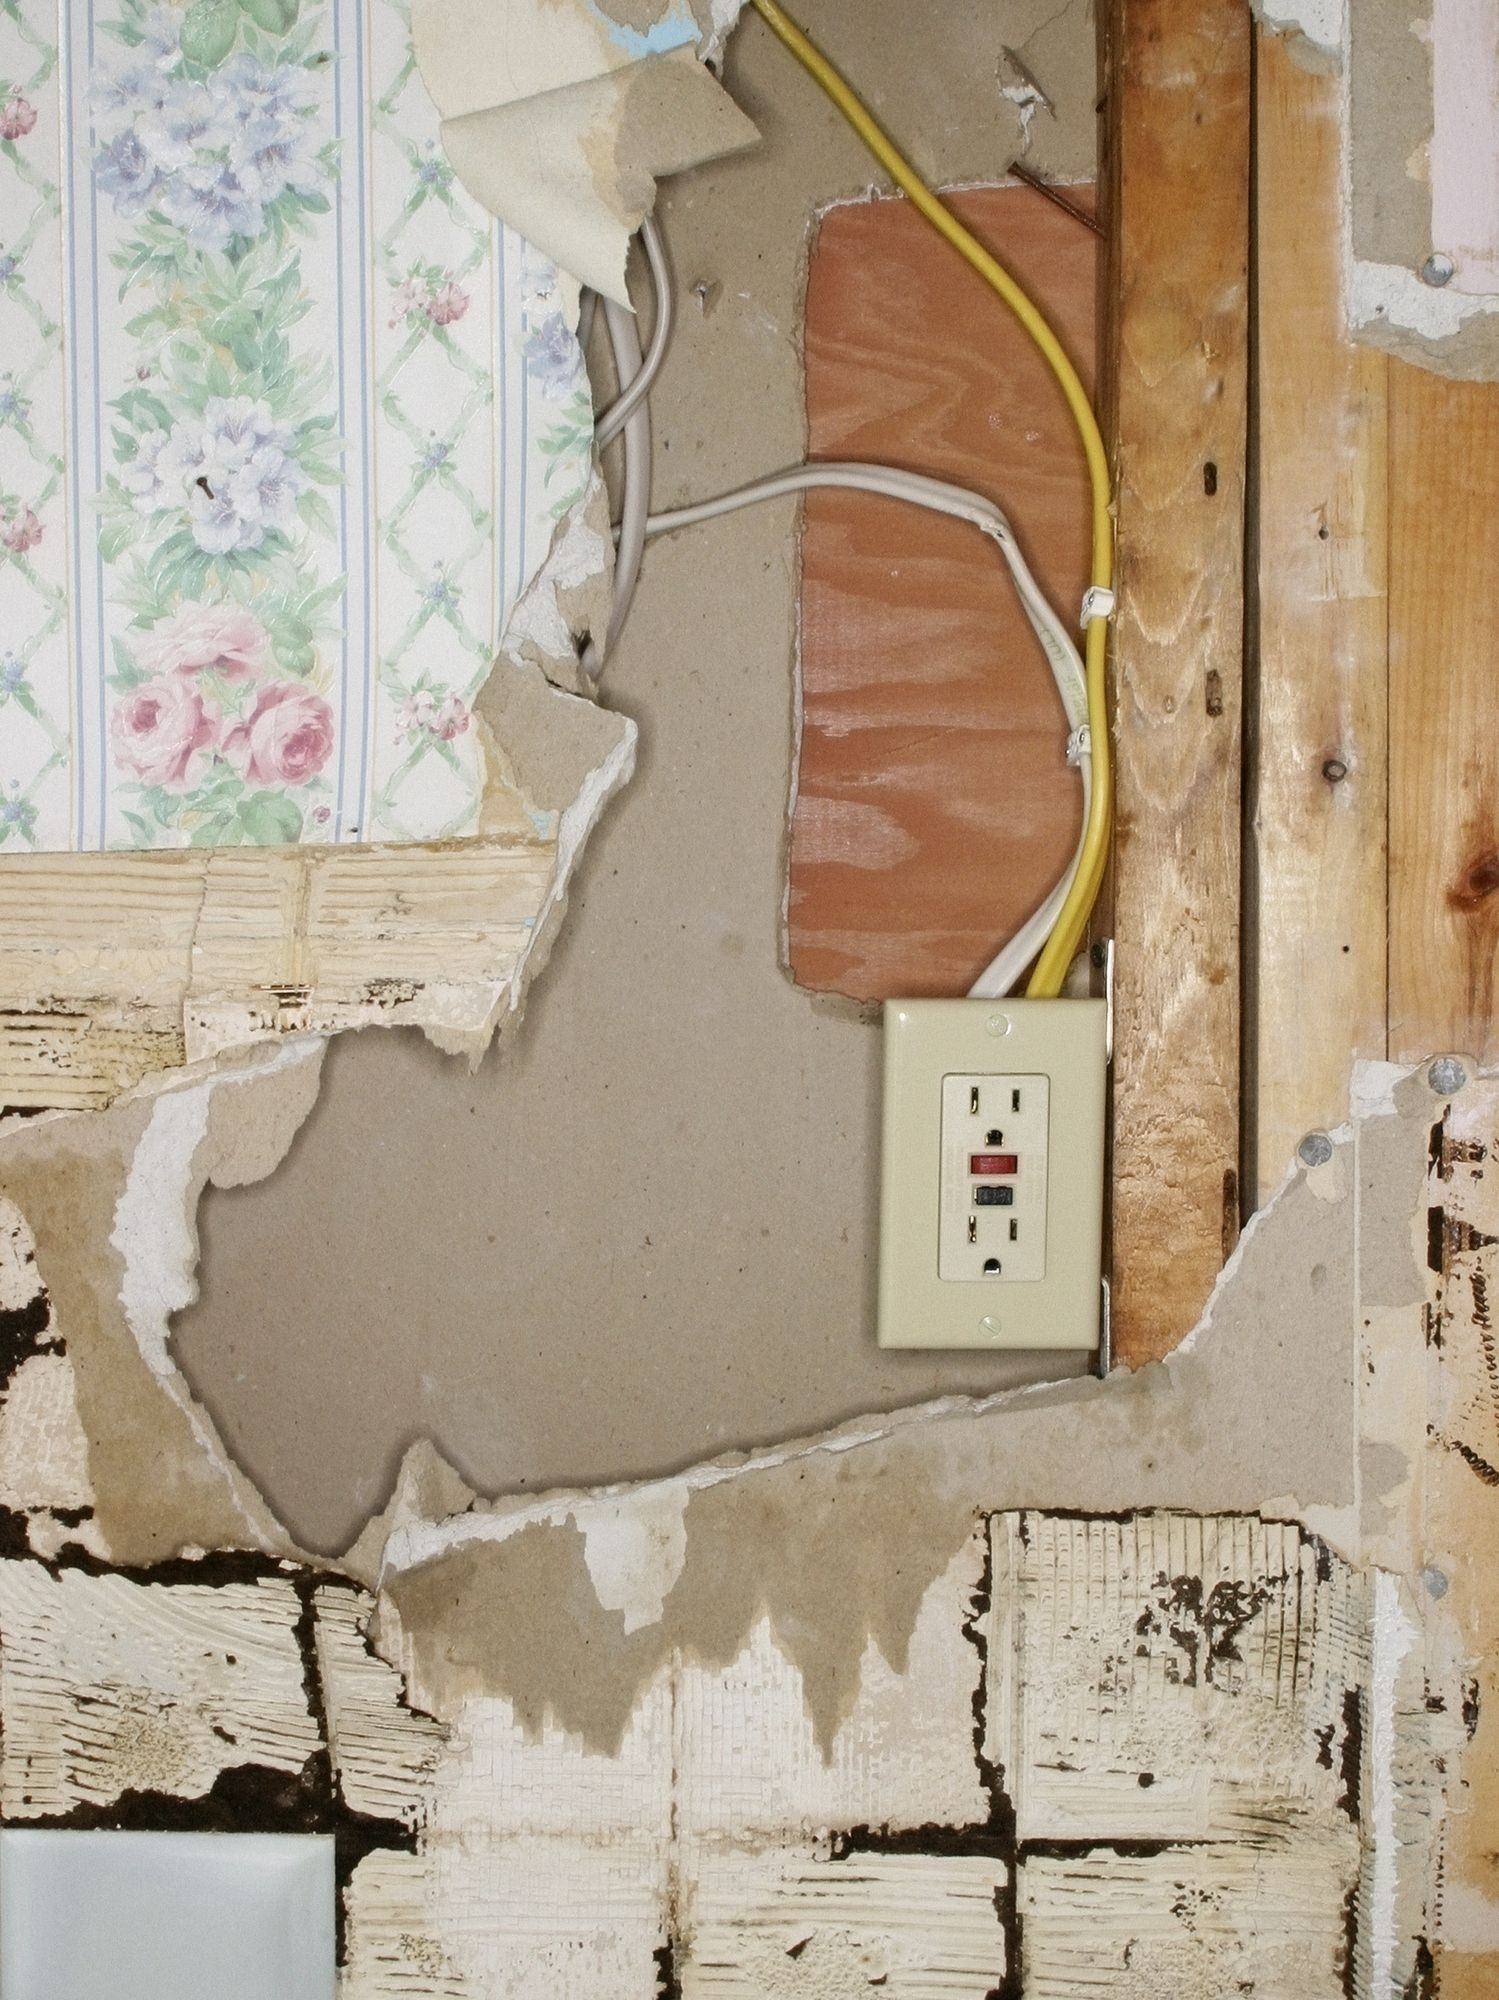 Is My Old Electrical House Wiring Safe Running At Home